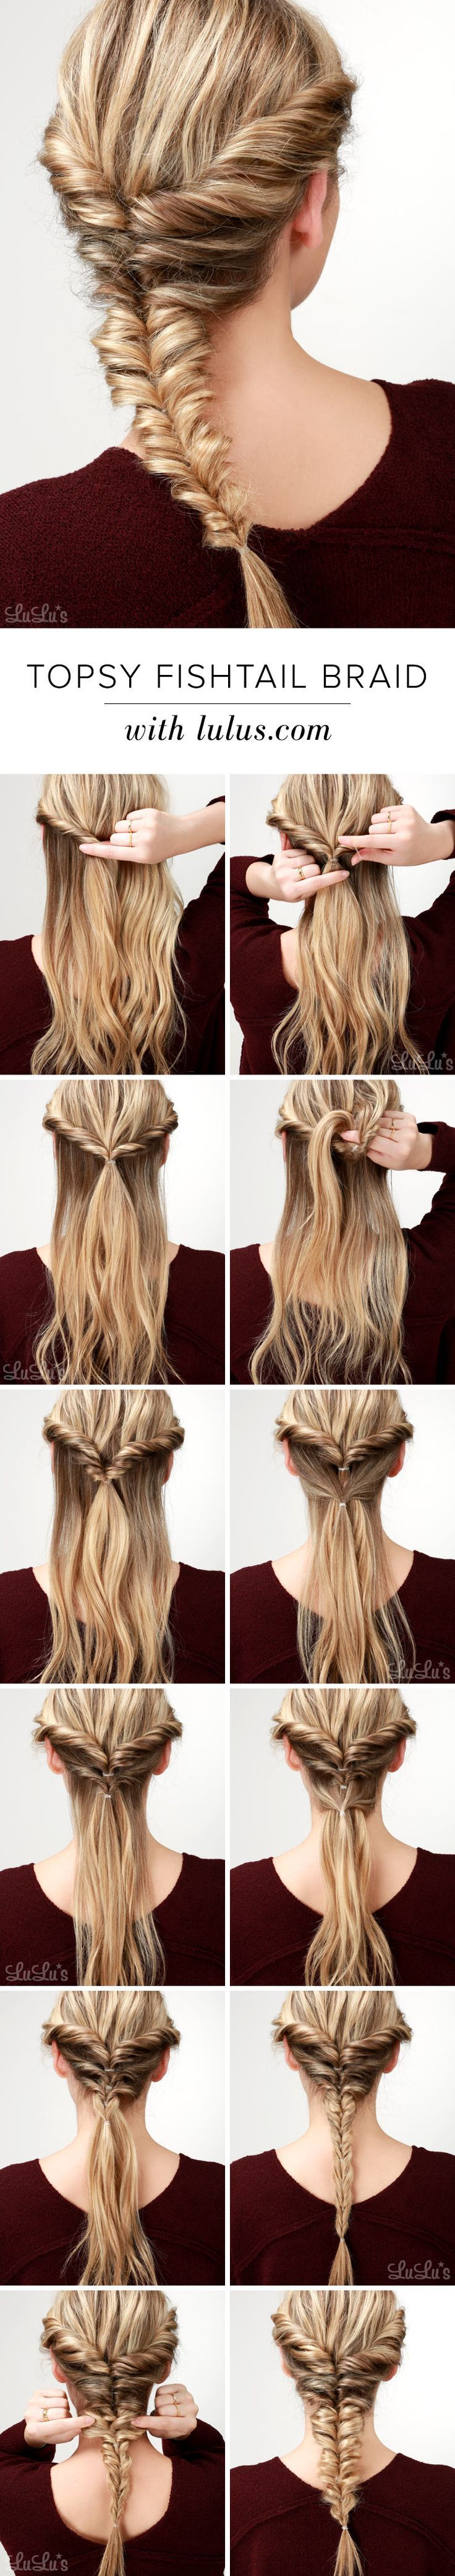 Lulu S How To Topsy Fishtail Braid Tutorial At Lulus Source